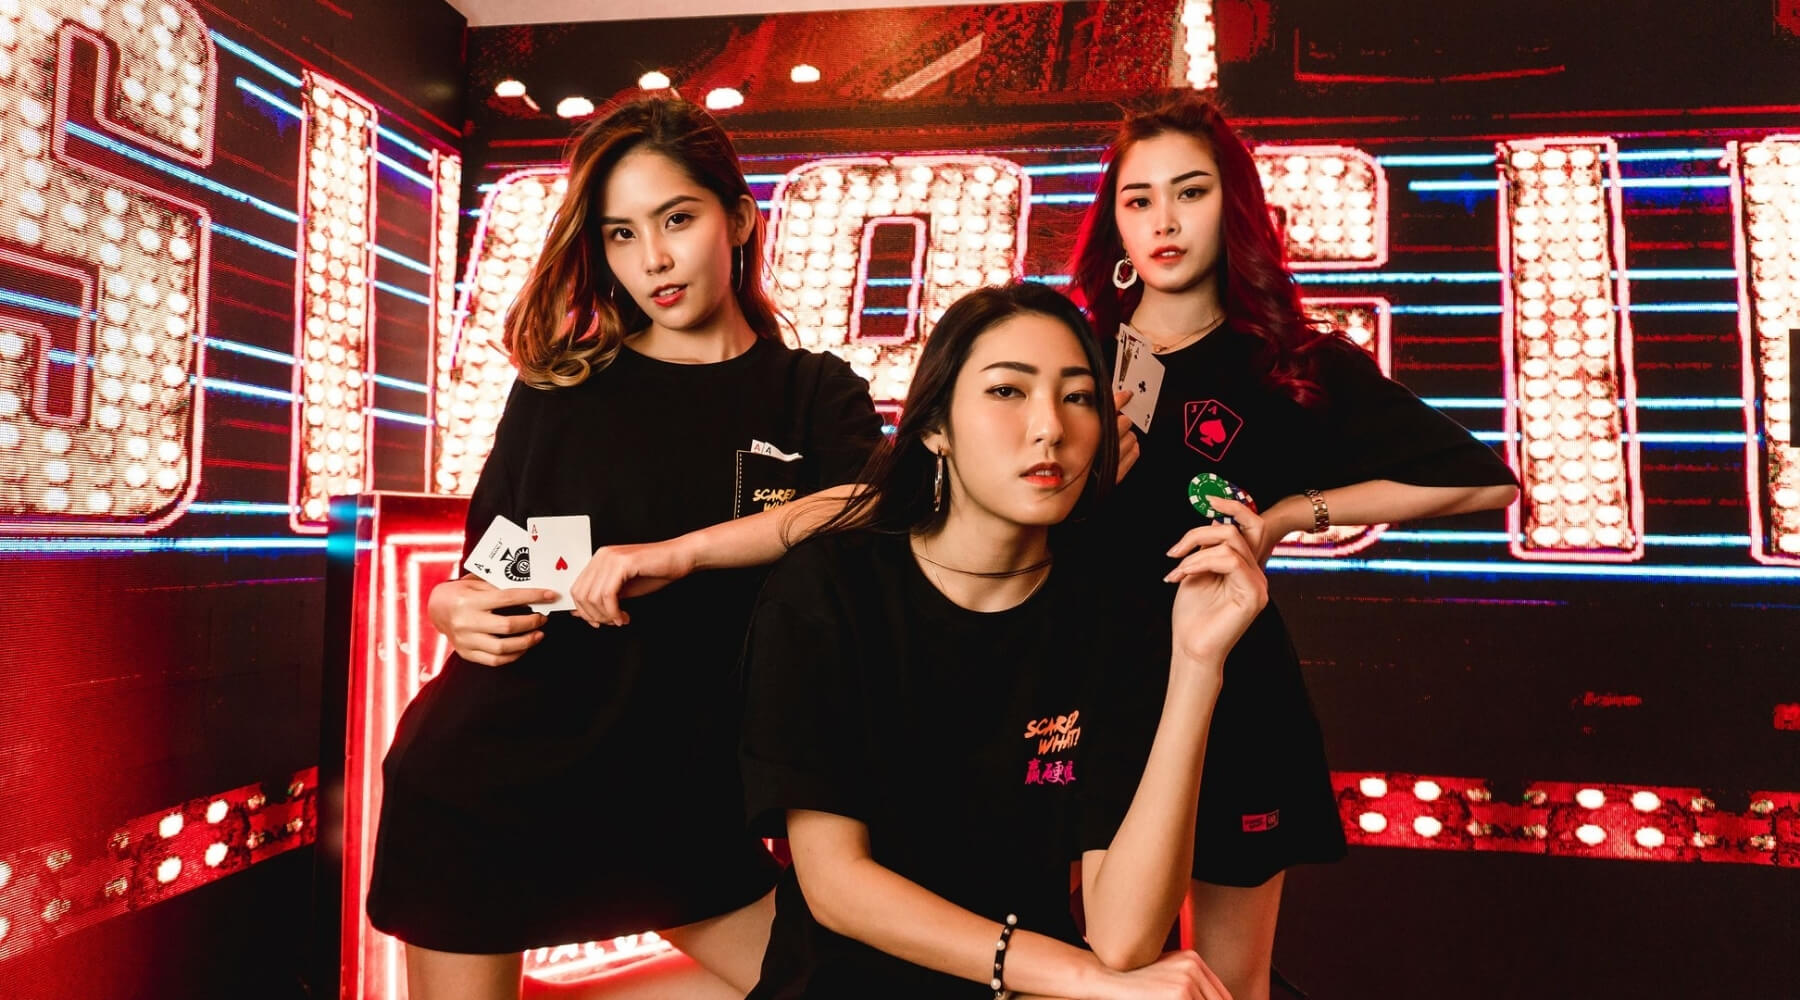 bloomthis-sapot-lokal-9-local-malaysian-brands-we-love-2021-06-scared-what-malaysian-streetwear